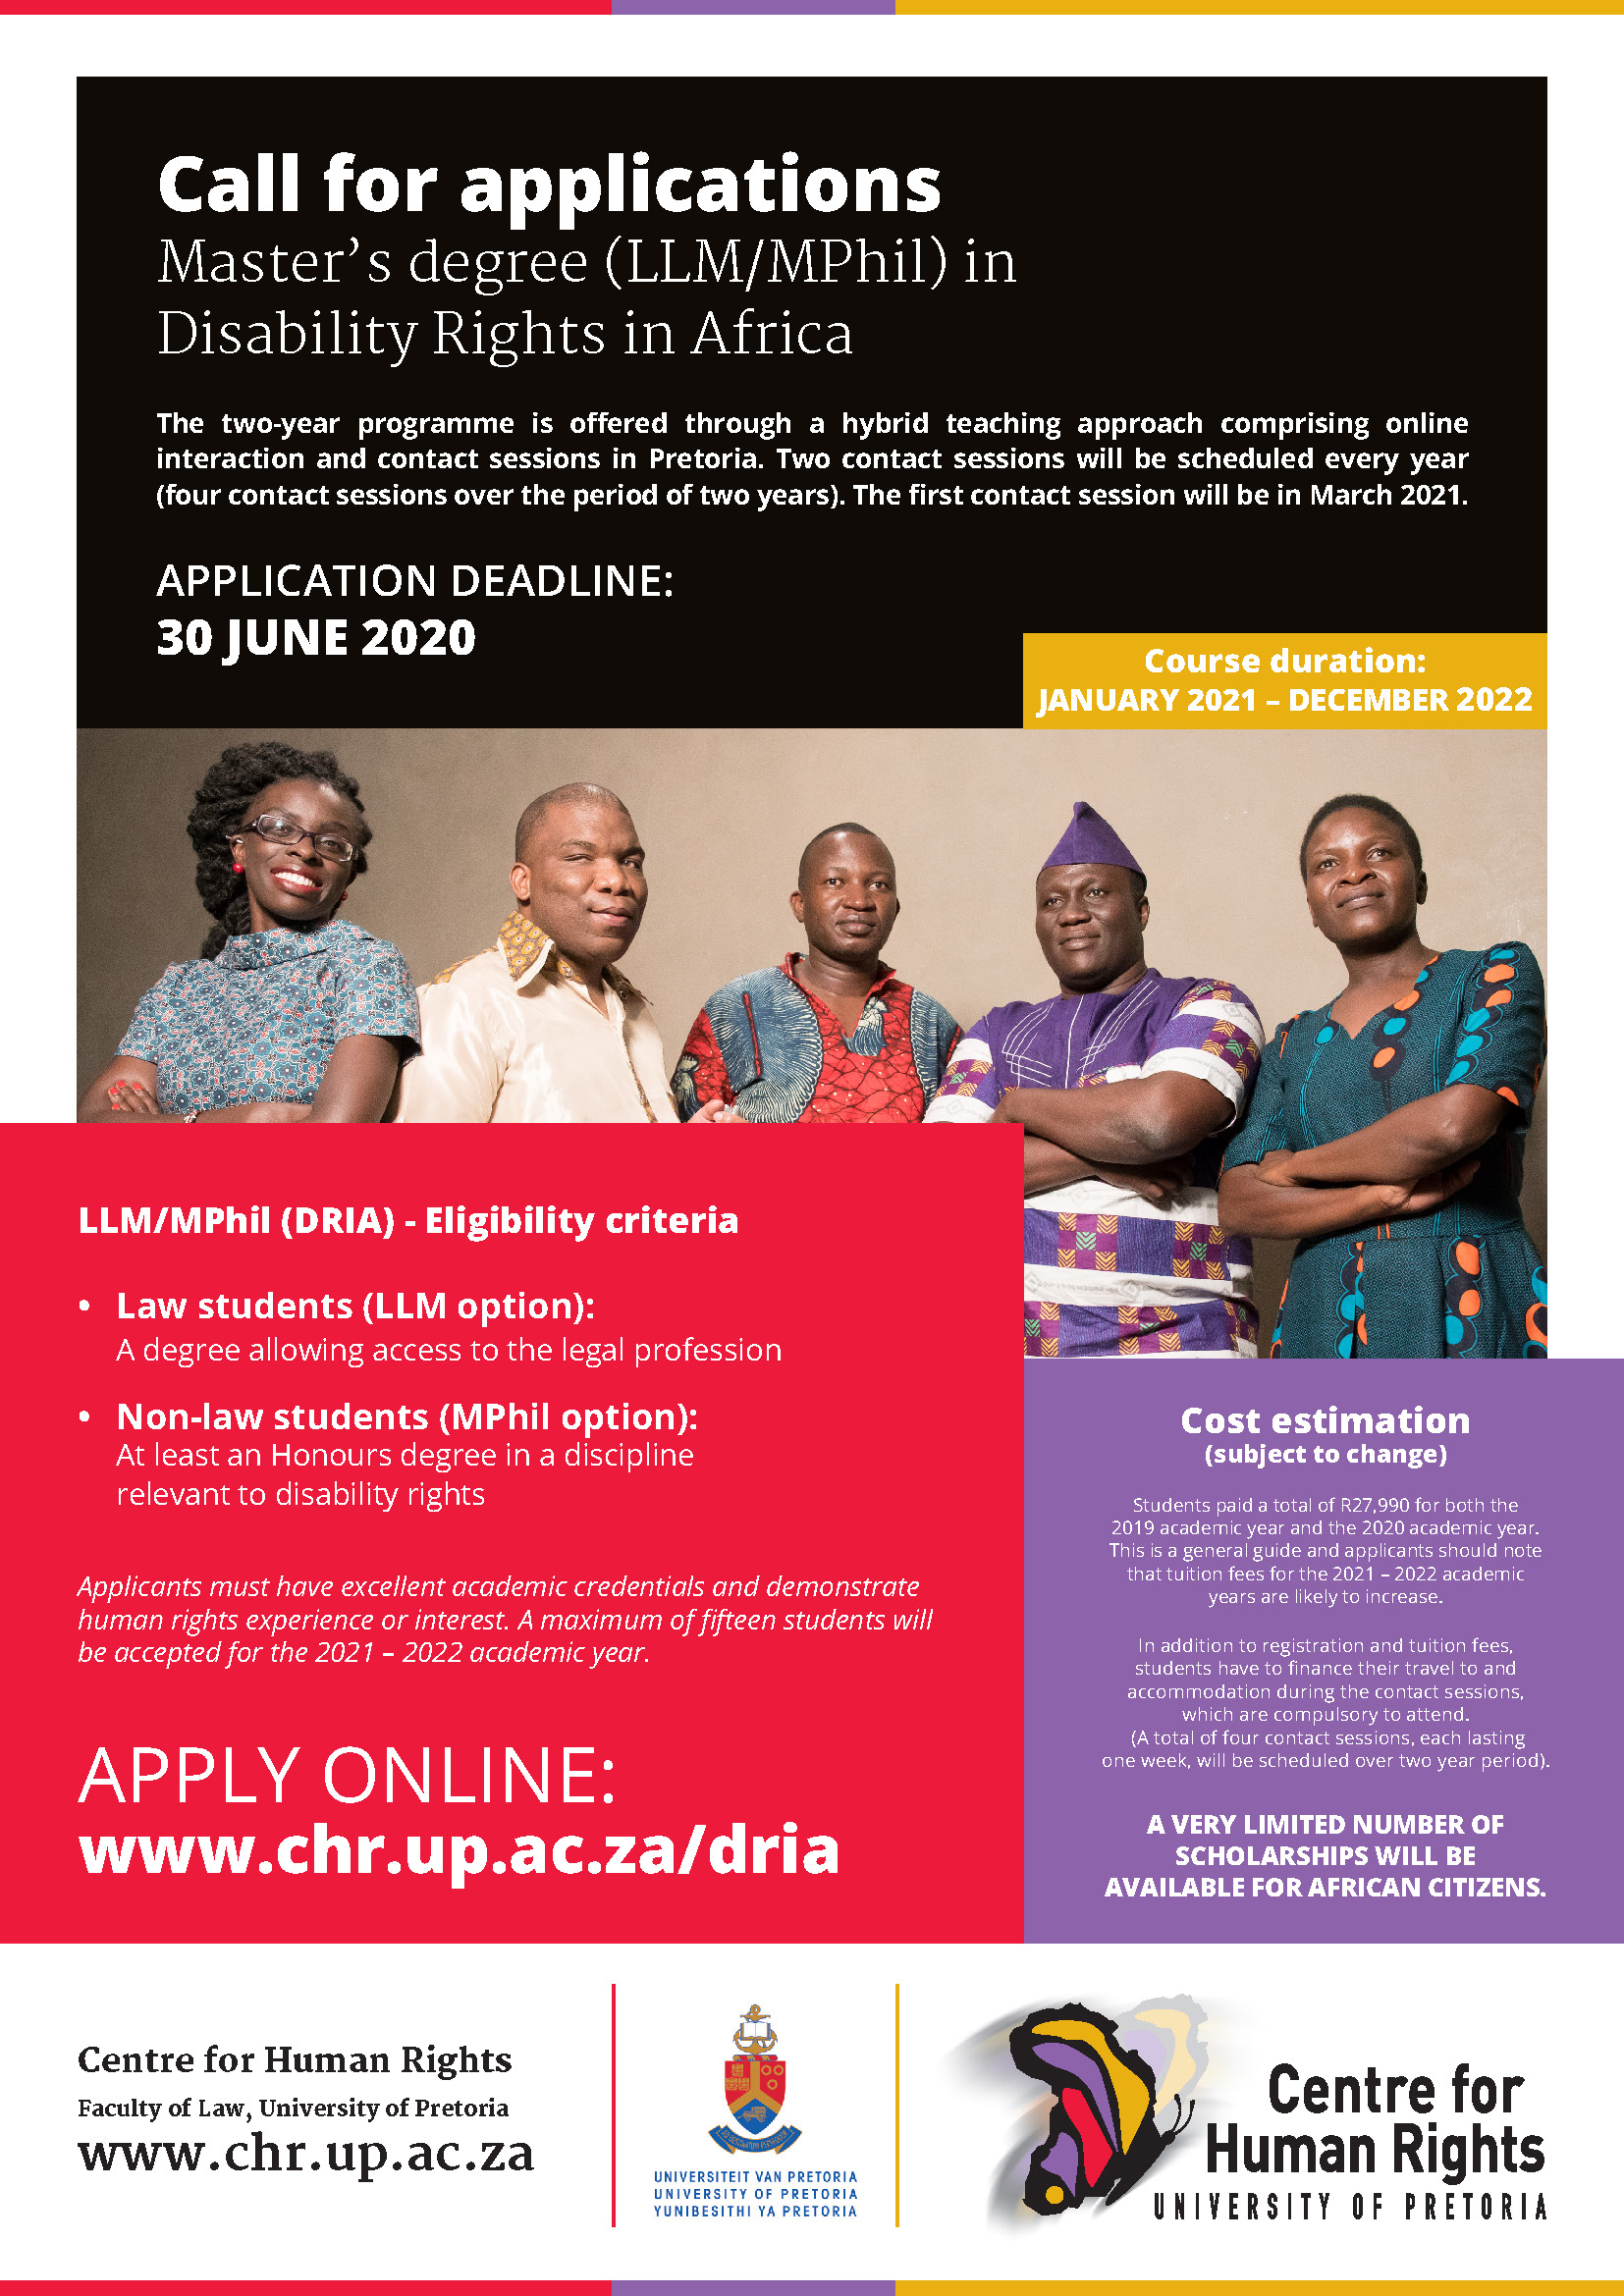 LLM MPhil DRIA Centre for Human Rights advert 2020